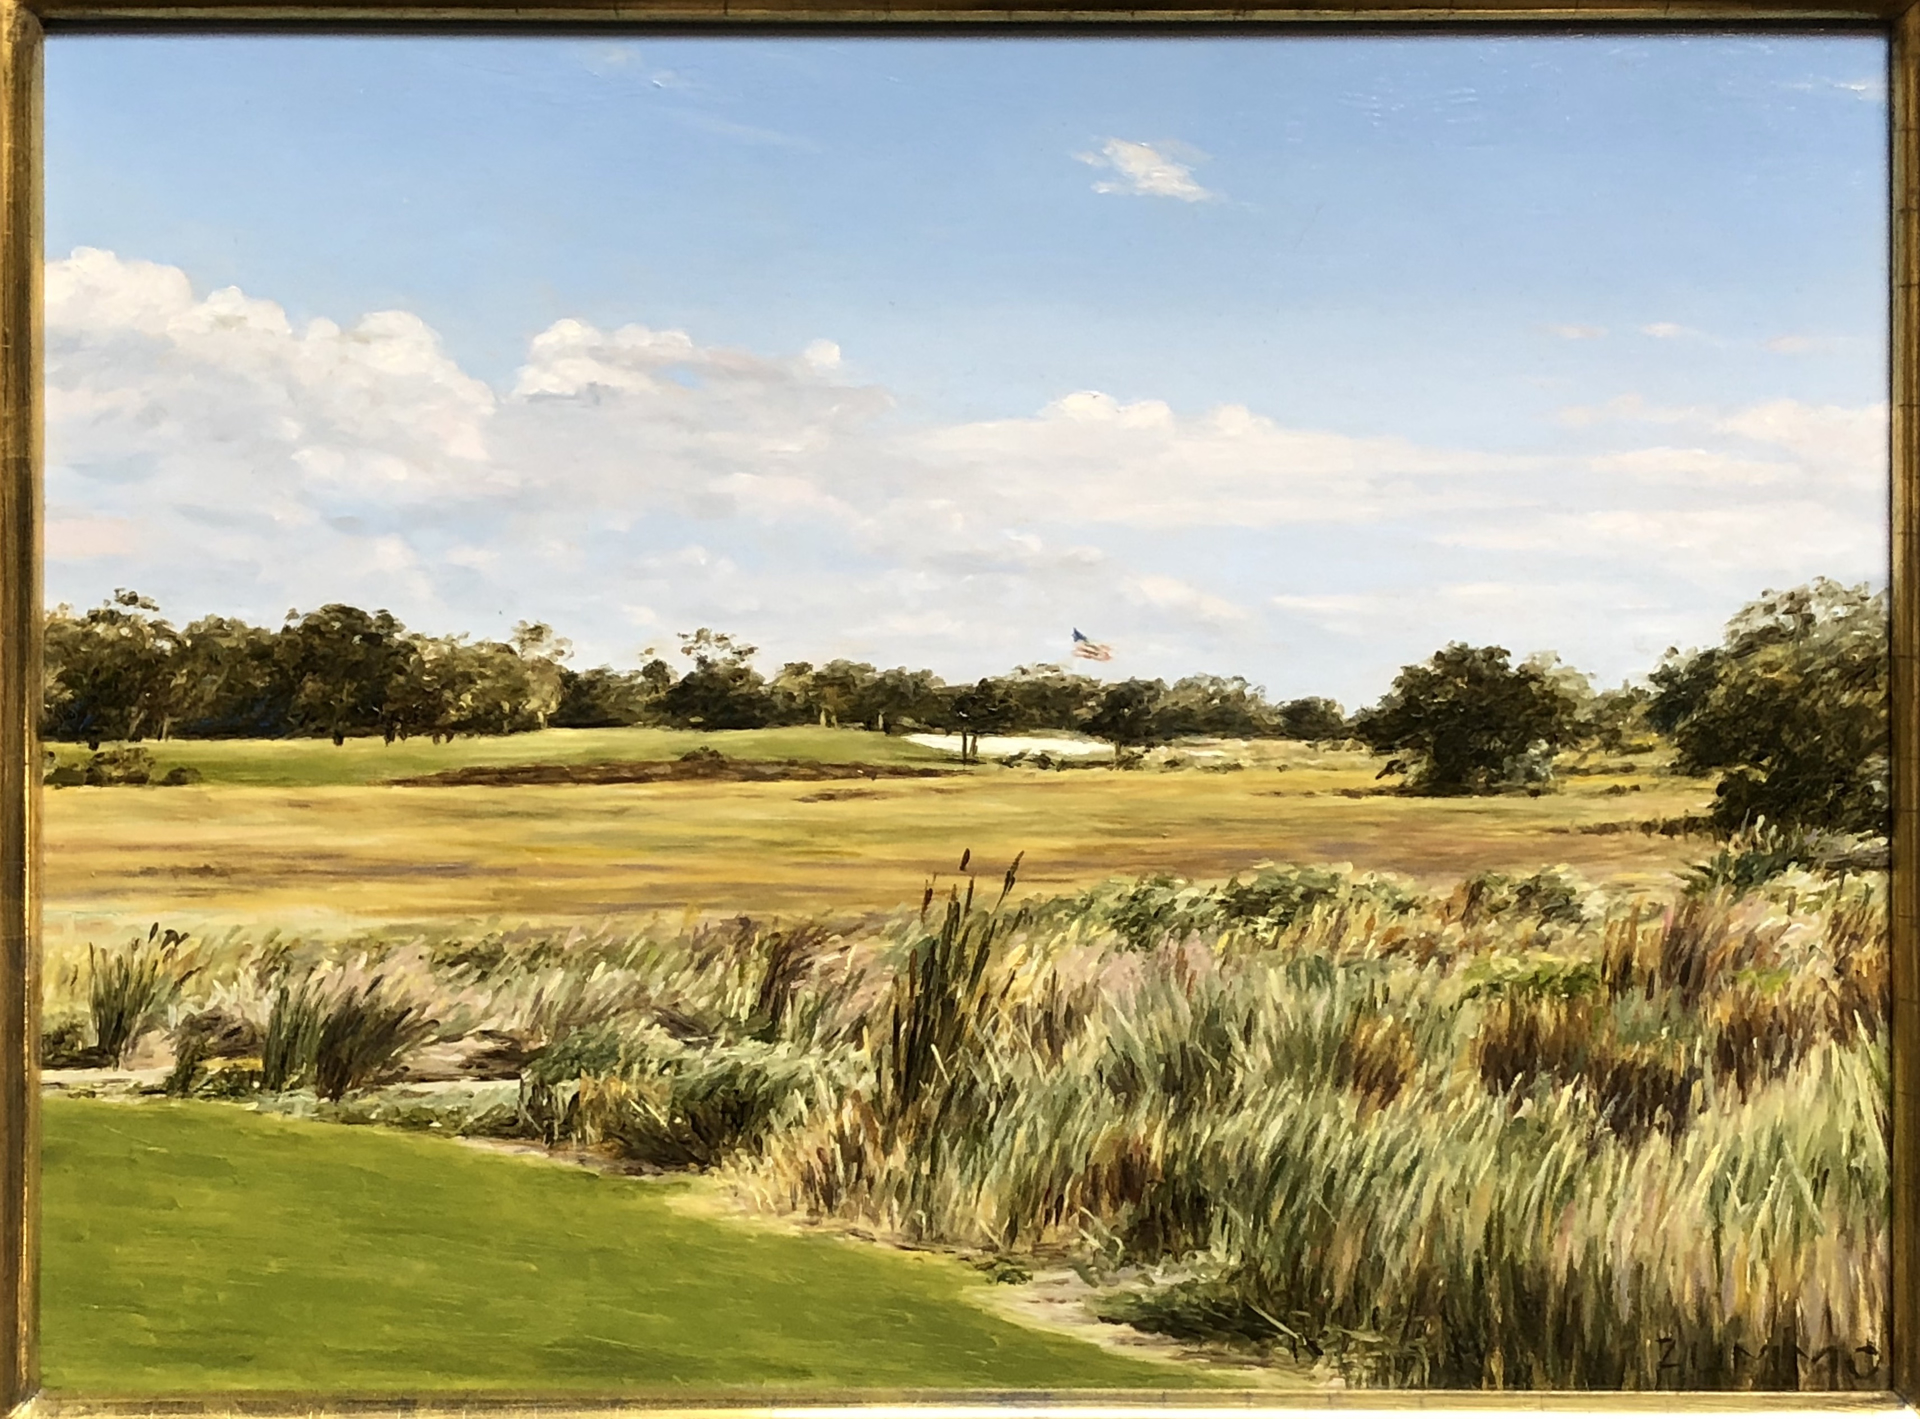 Sea Island Golf Club by Lori Zummo